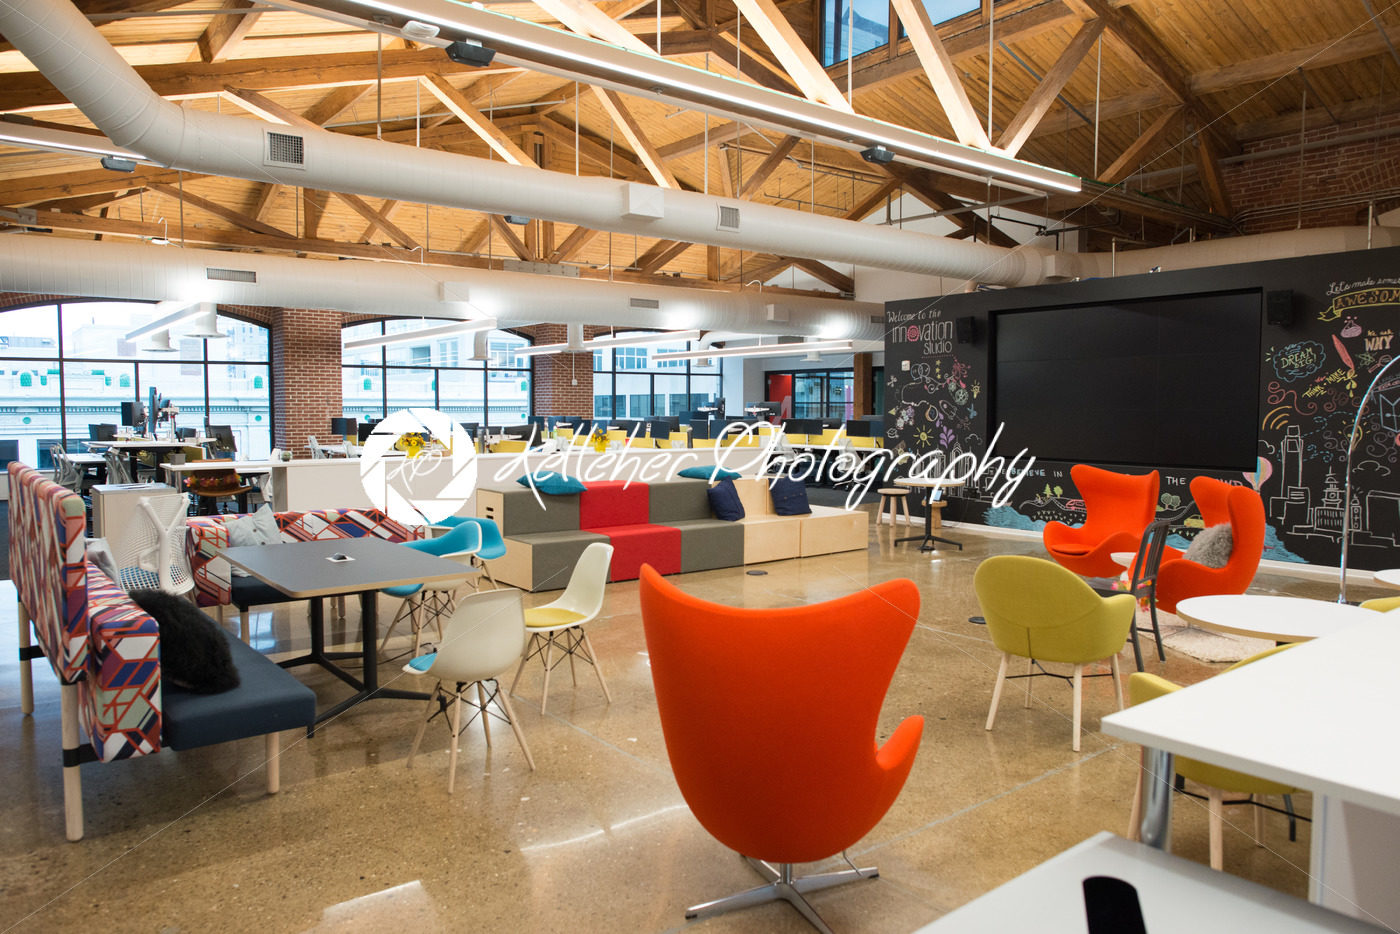 Loft office Brick Wall Trendy Modern Open Concept Loft Office Space With Big Windows Natural Light And Layout To Encourage Collaboration Creativity And Innovation 3dtotal Forums Trendy Modern Open Concept Loft Office Space With Big Windows